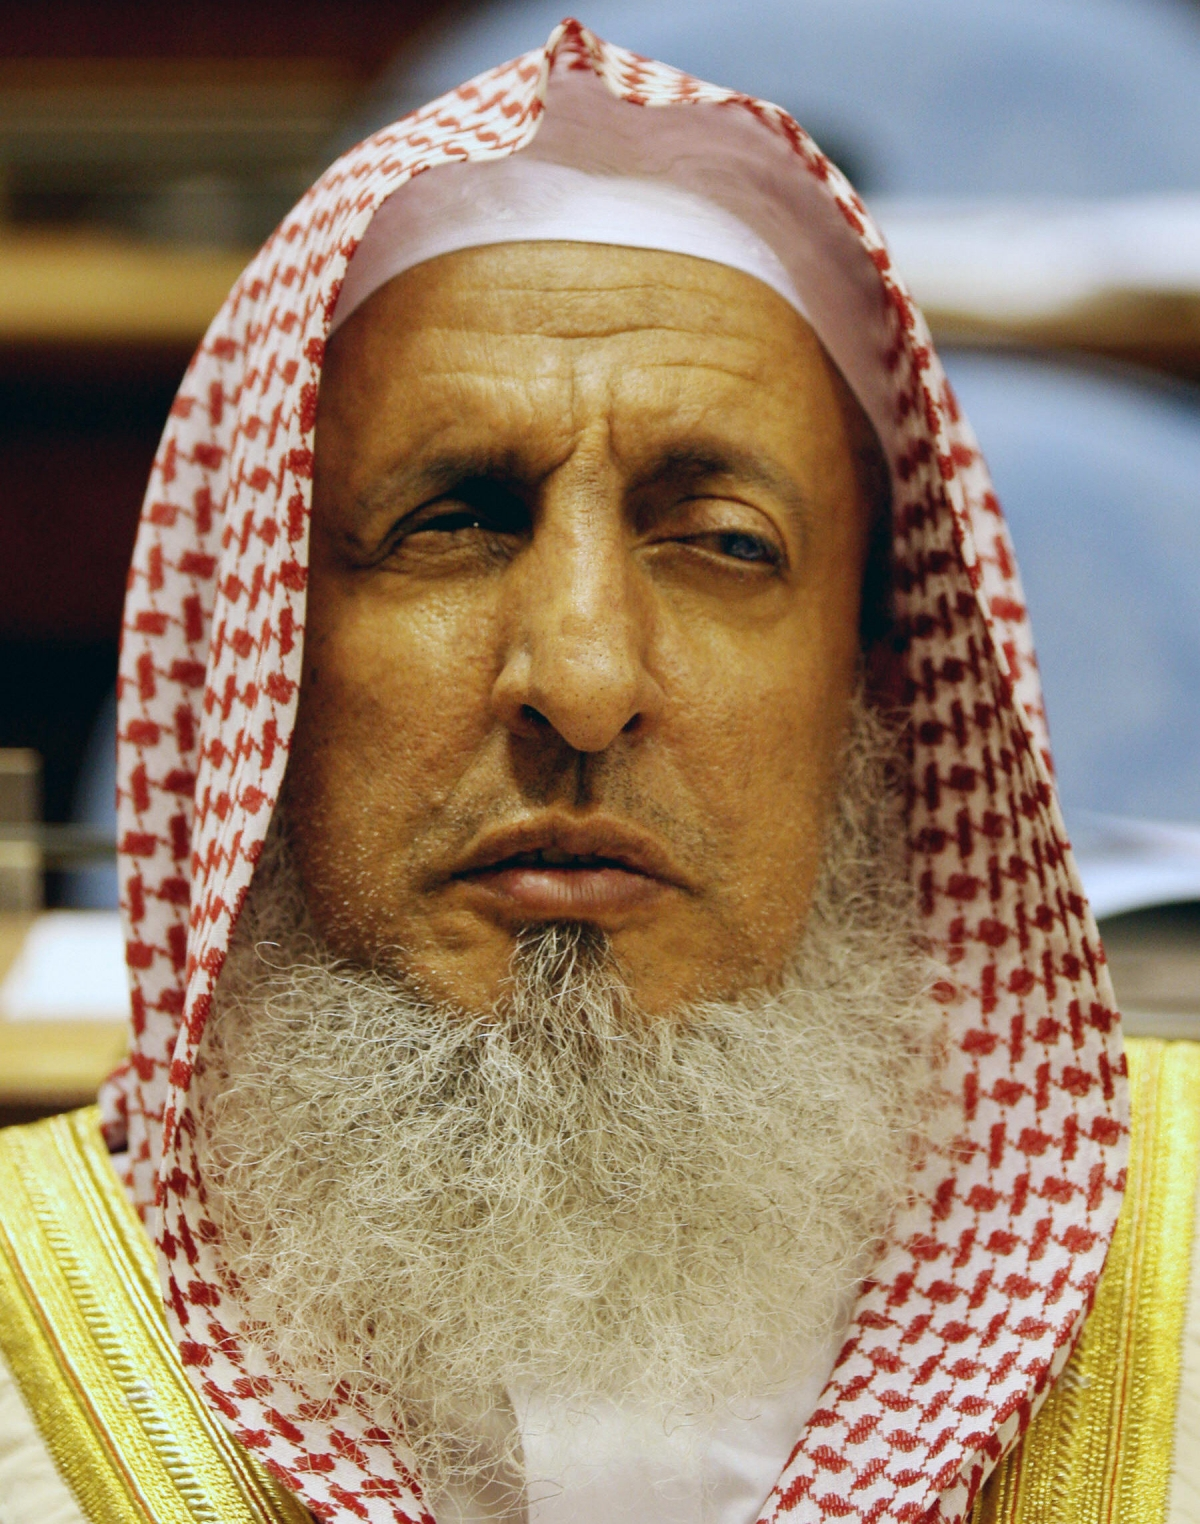 Grand Mufti of Saudi Arabia